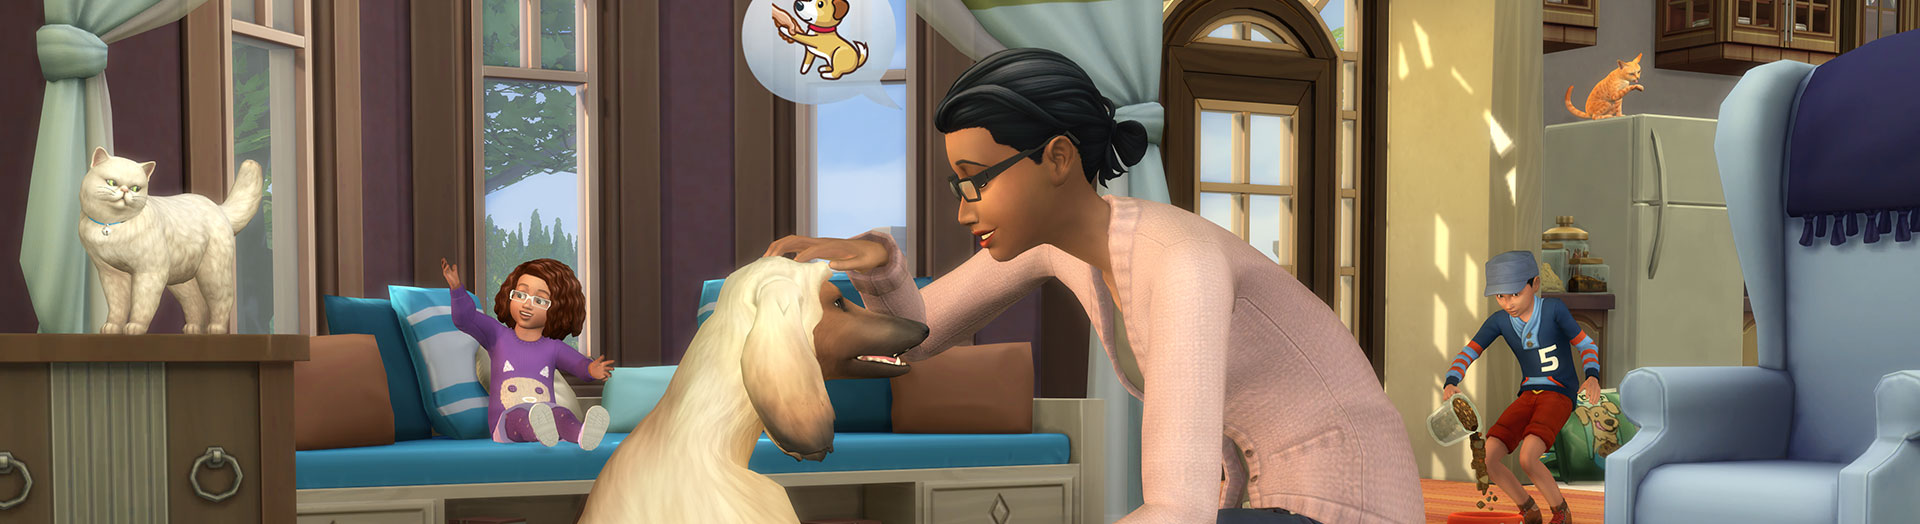 https://www.thesims.com/media/cache/full/content/dam/www-thesims/store/EP4-CatsAndDog-ts/TS4_EP4_Screensh_0_010.jpg